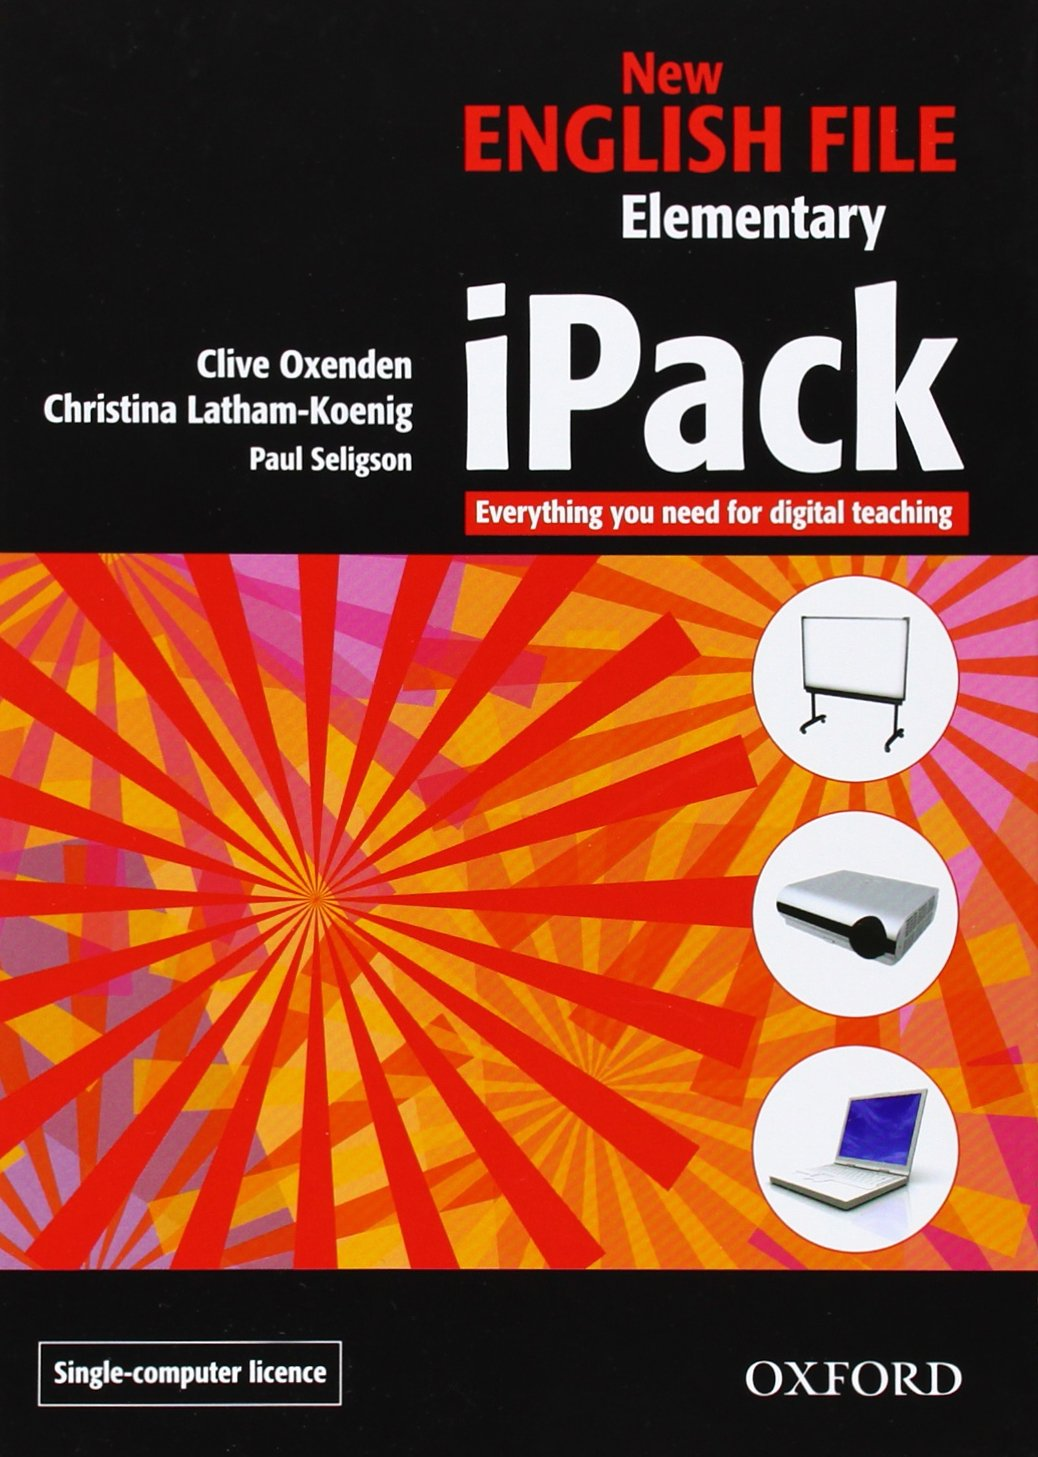 NEW ENGLISH FILE ELEMENTARY iPack Single-Computer Licence